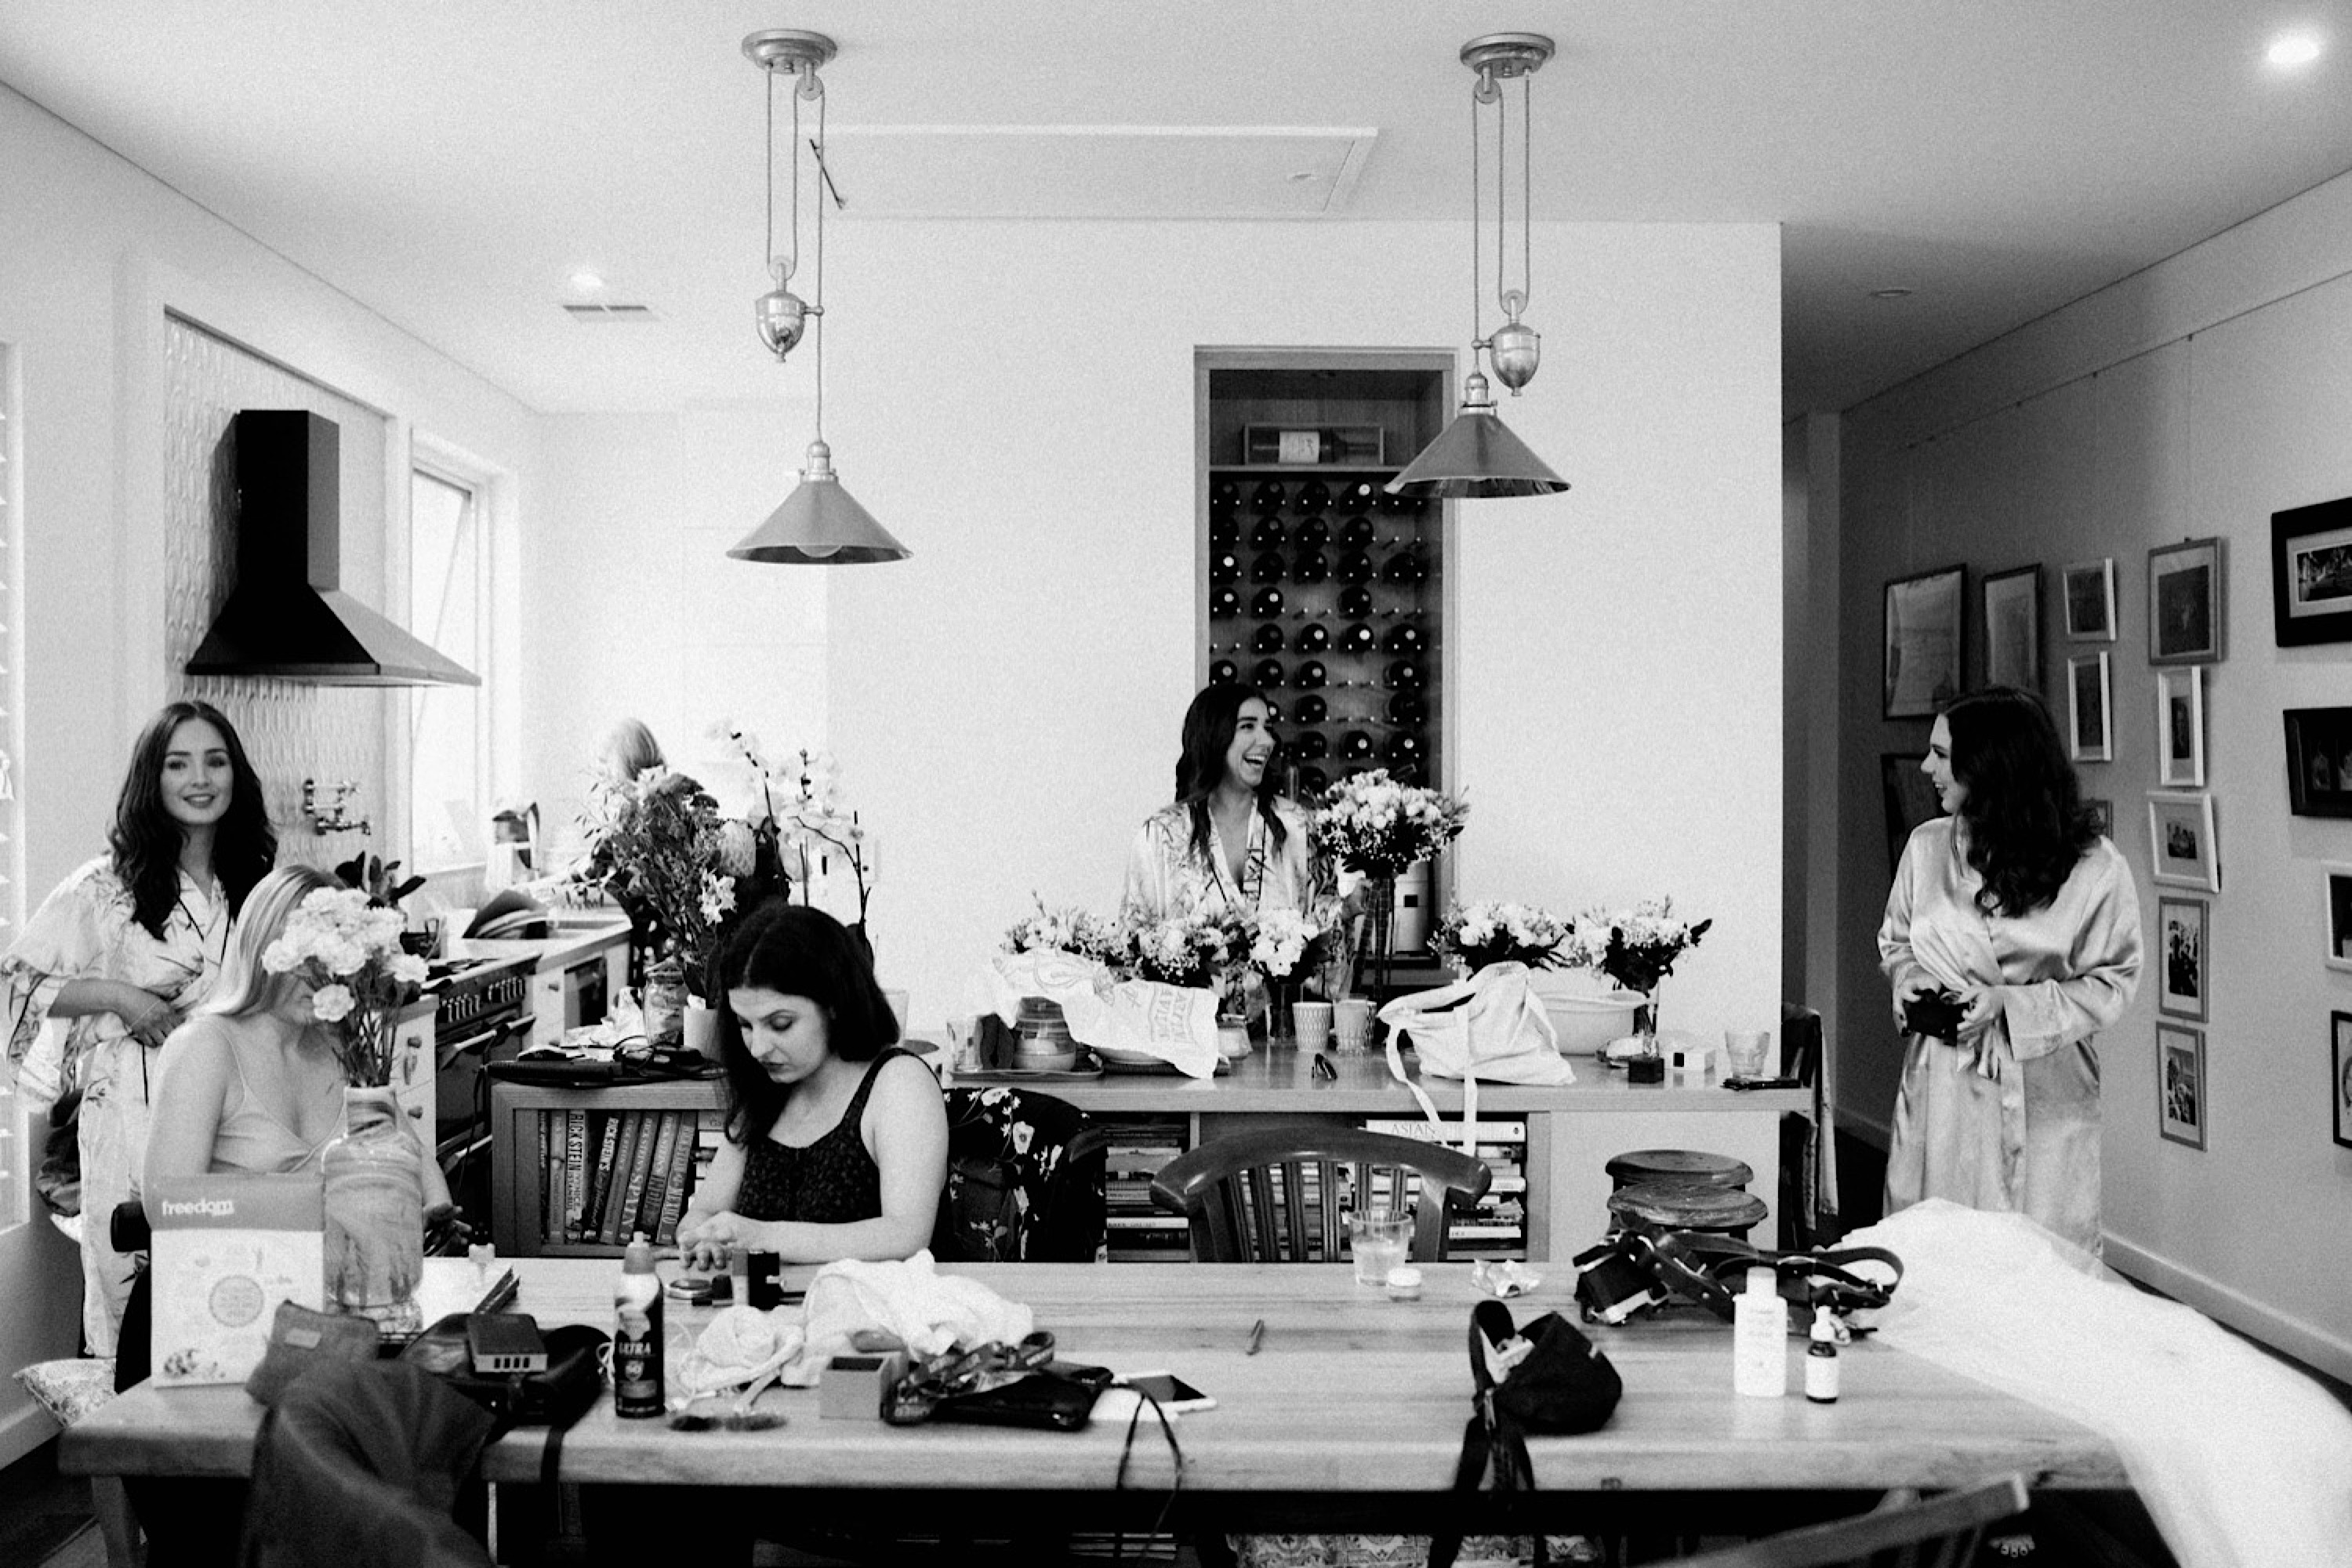 A black & white candid wedding photo of the bride & her bridesmaid's getting ready in the kitchen in the morning.